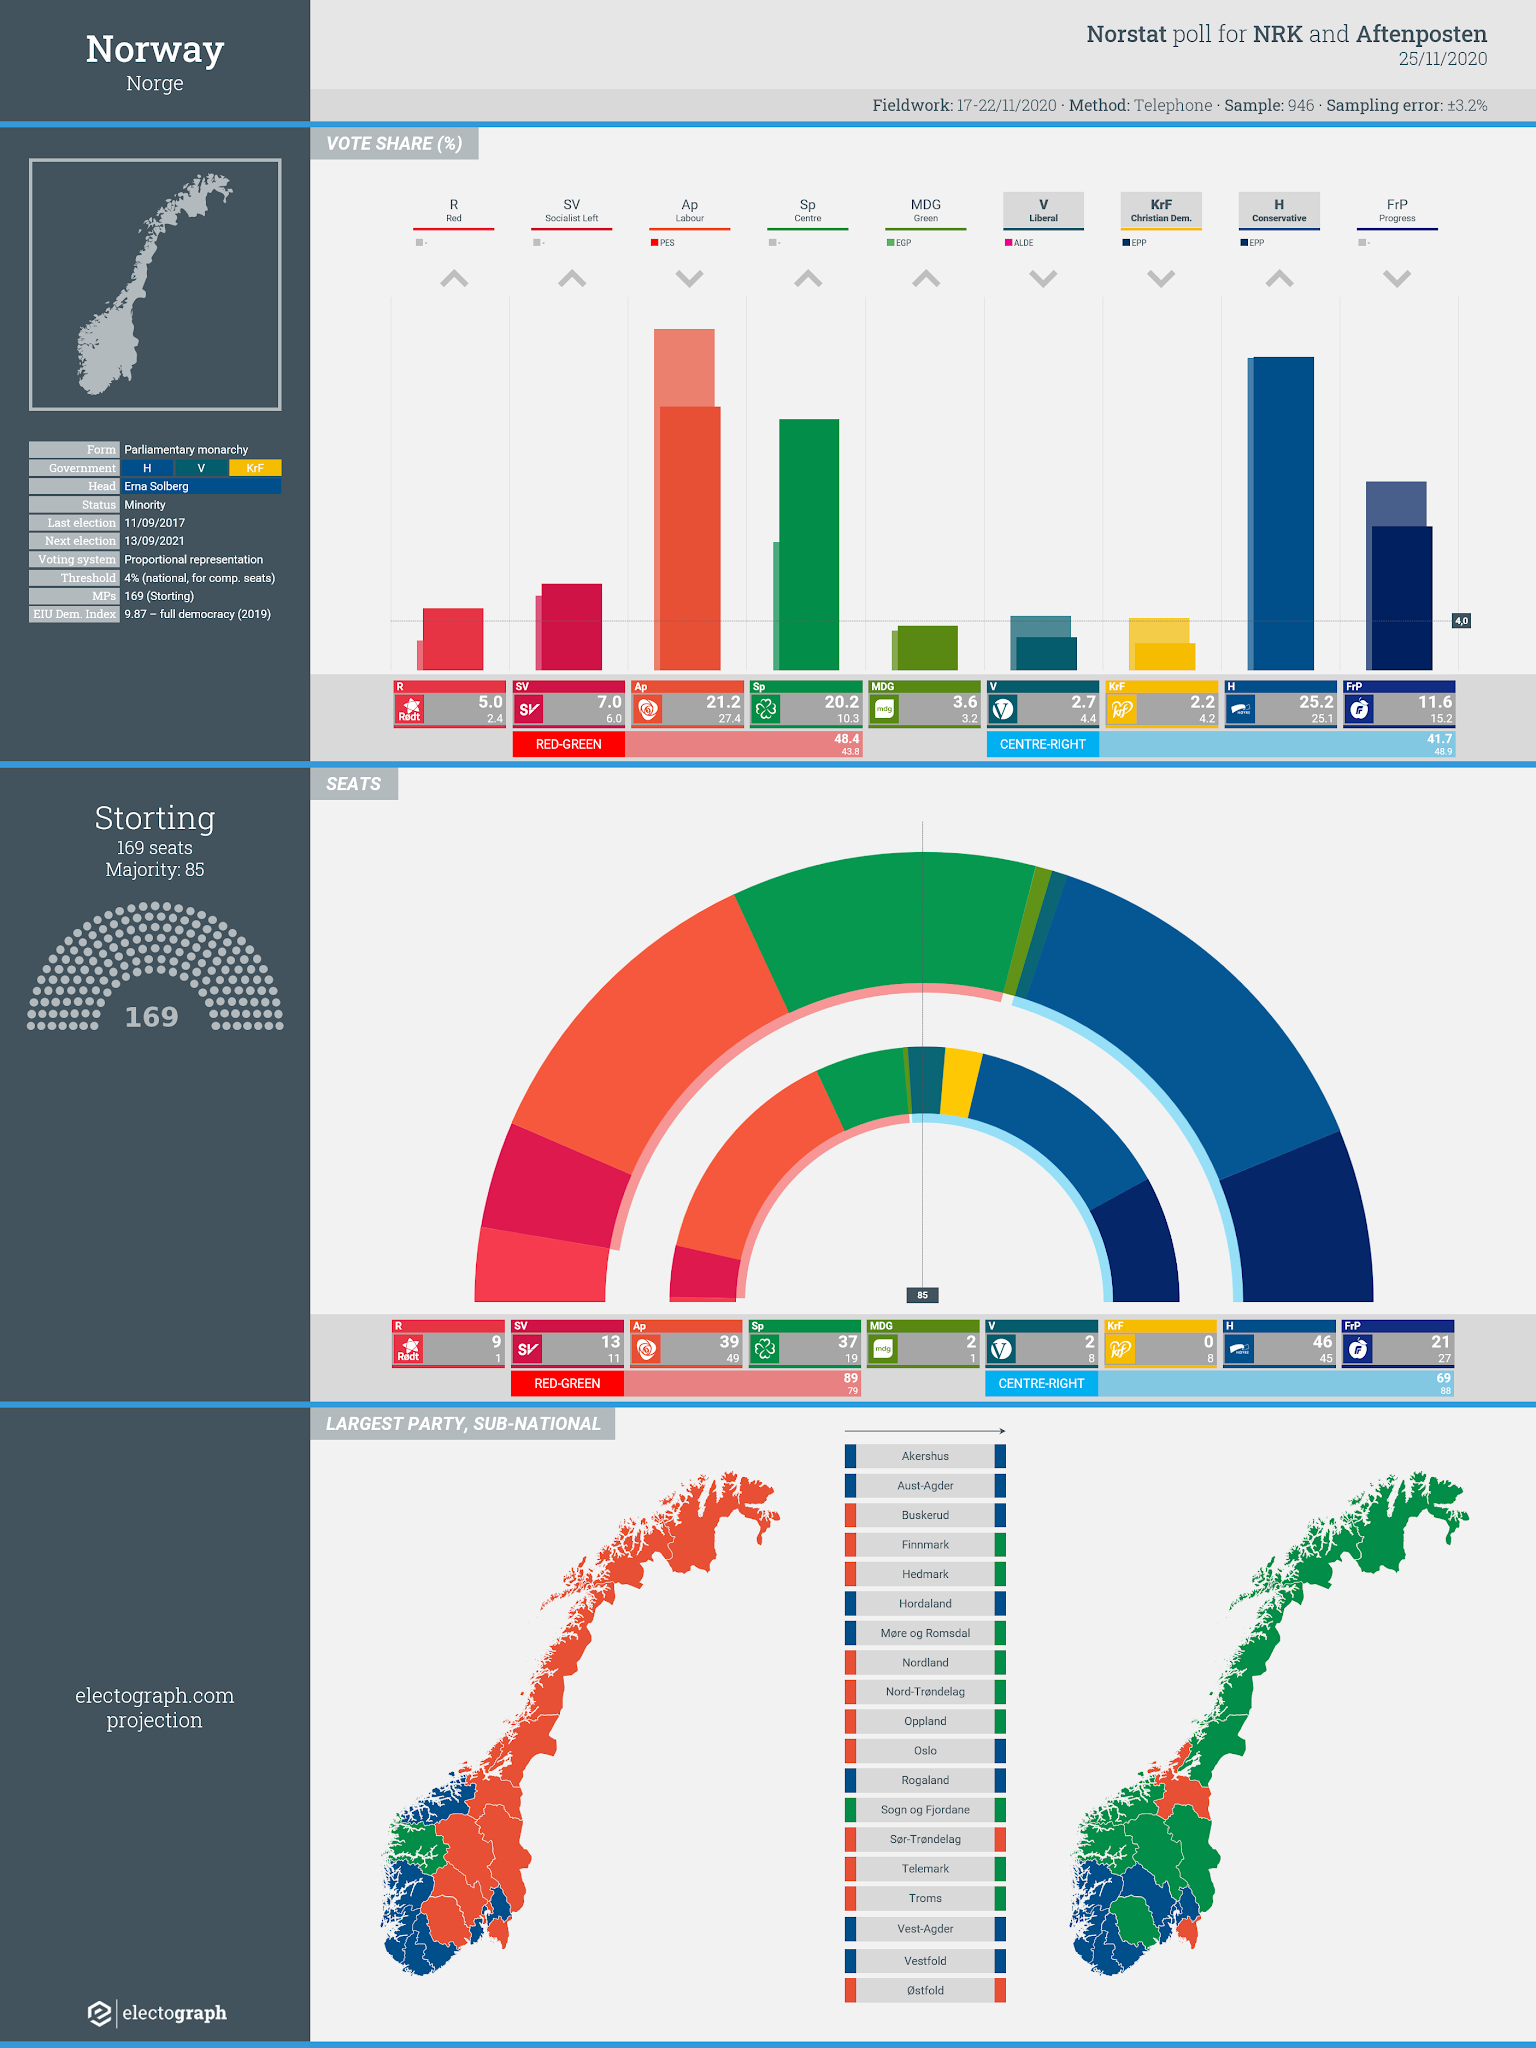 NORWAY: Norstat poll chart for NRK and Aftenposten, 25 November 2020